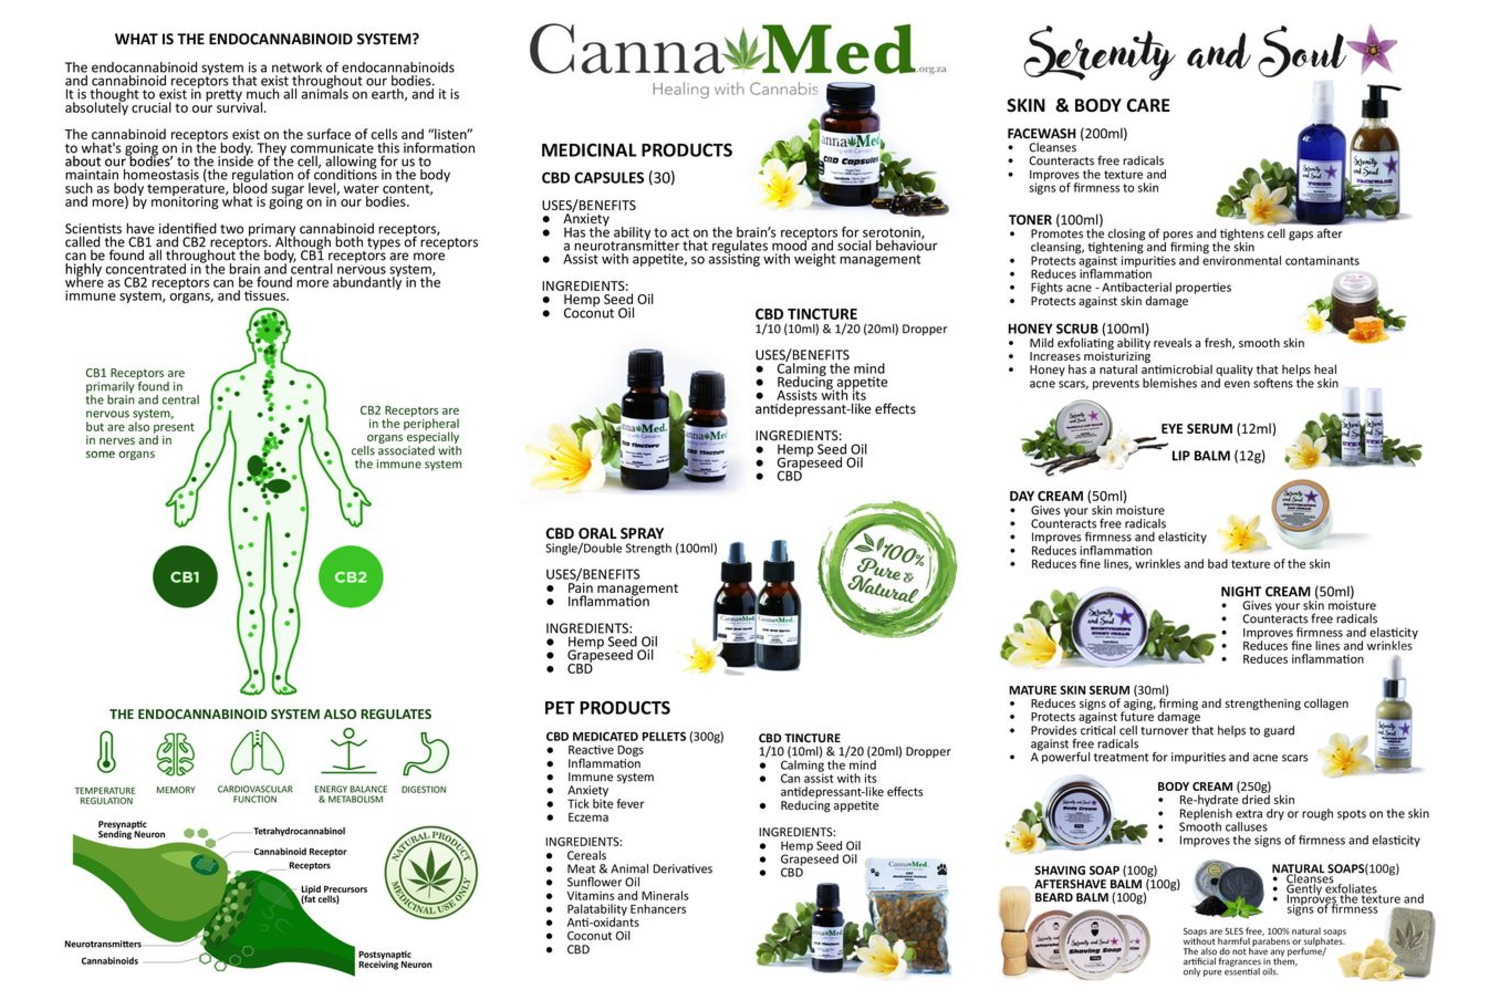 NATURAL HEALING MADE POSSIBLE WITH MEDICINAL CBD